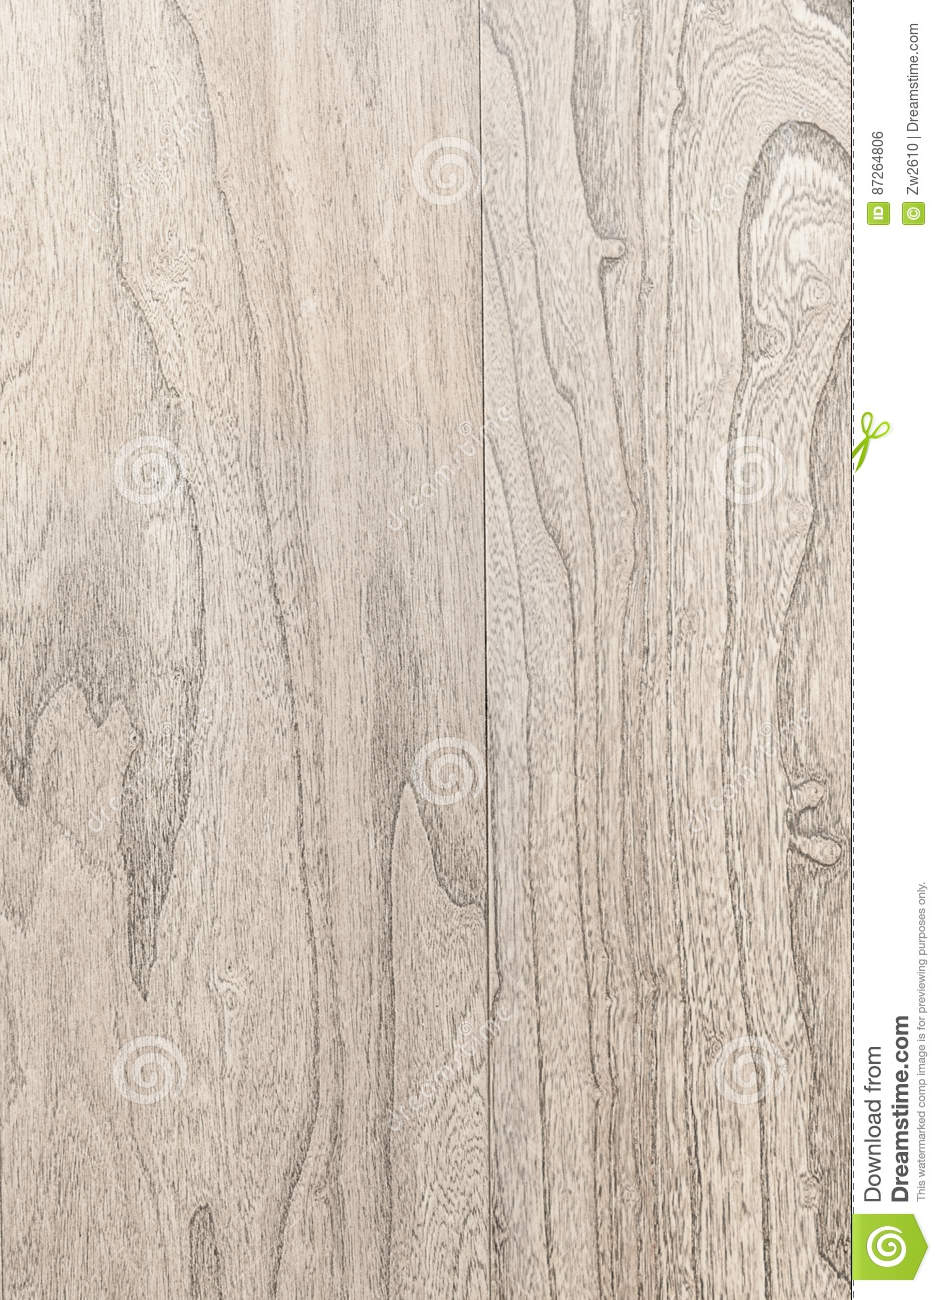 A WOODEN PLATE